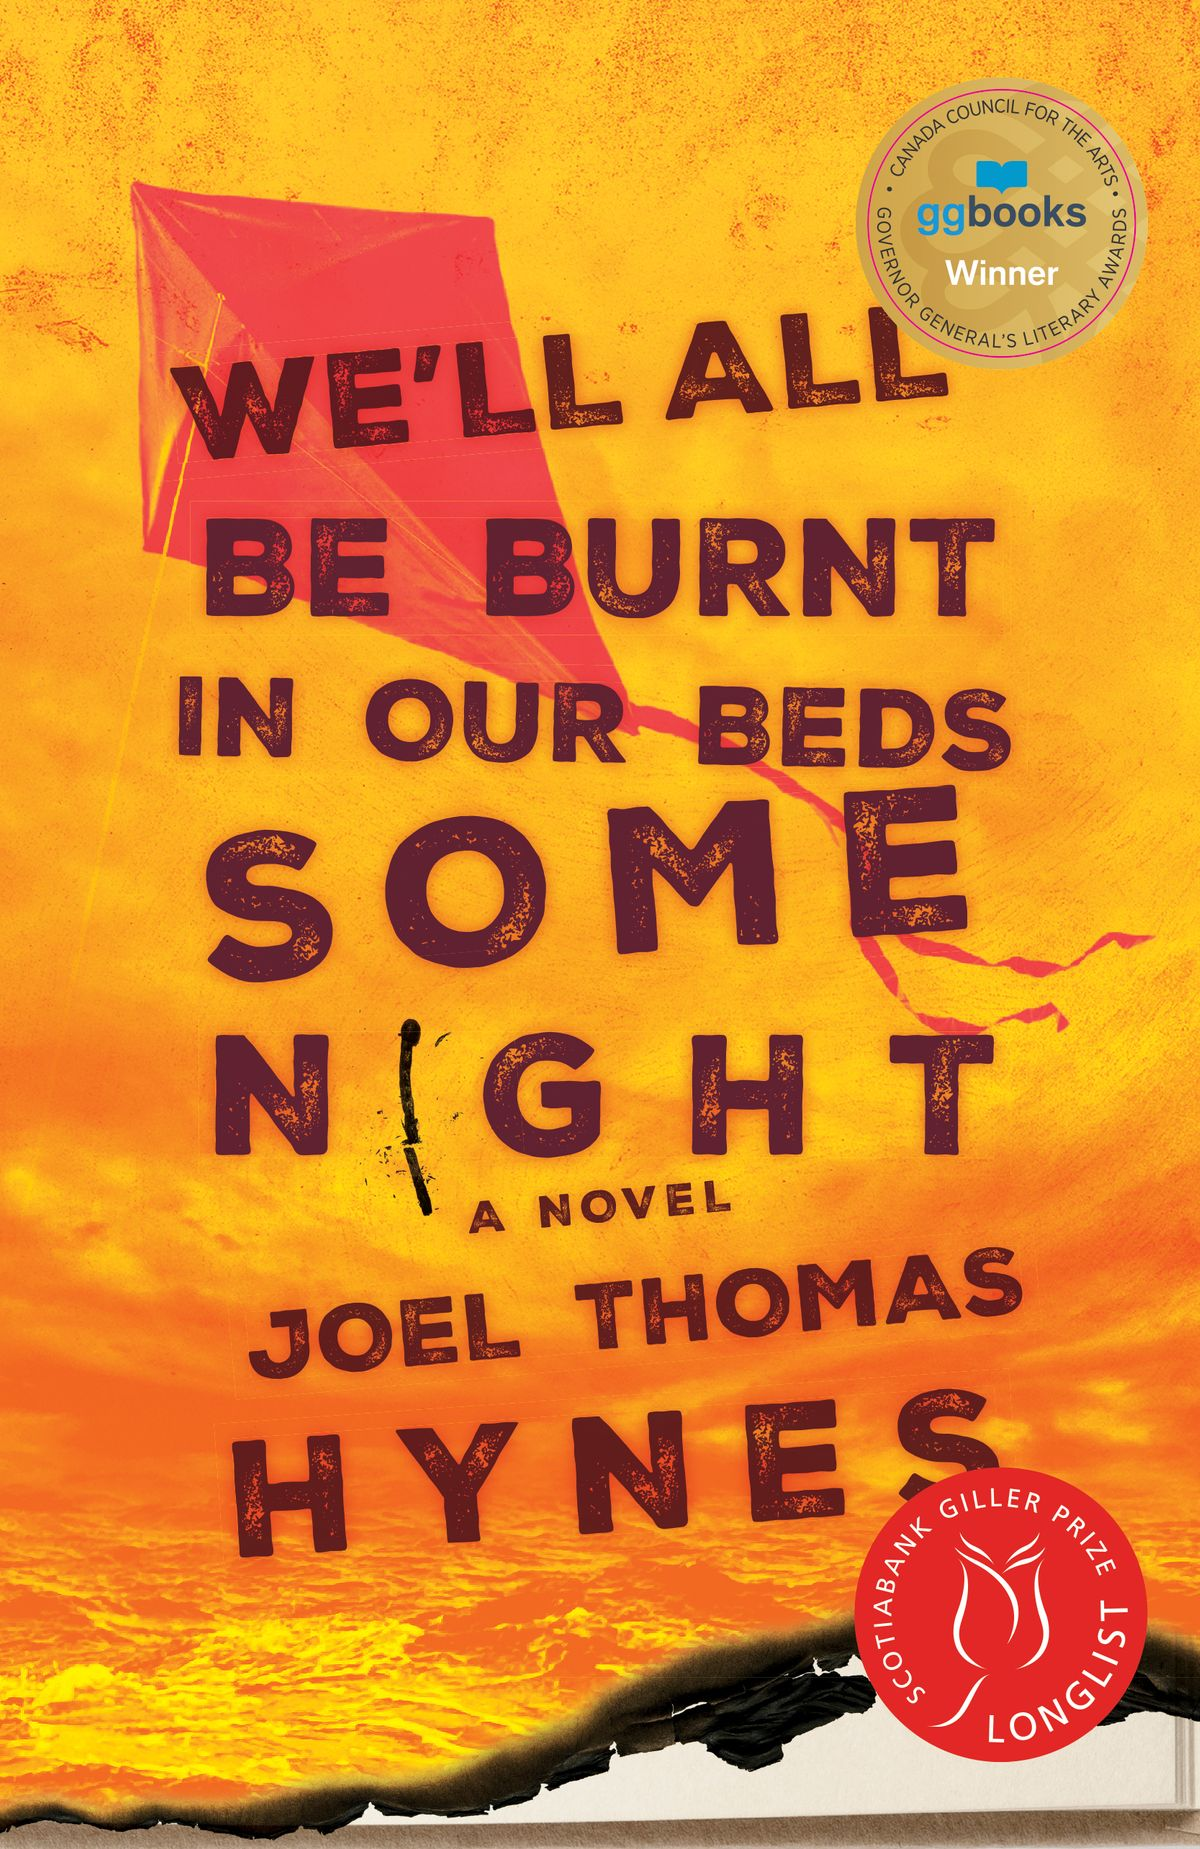 We'll All Be Burnt in Our Beds Some Night (Ebook, 2017, HarperCollins)